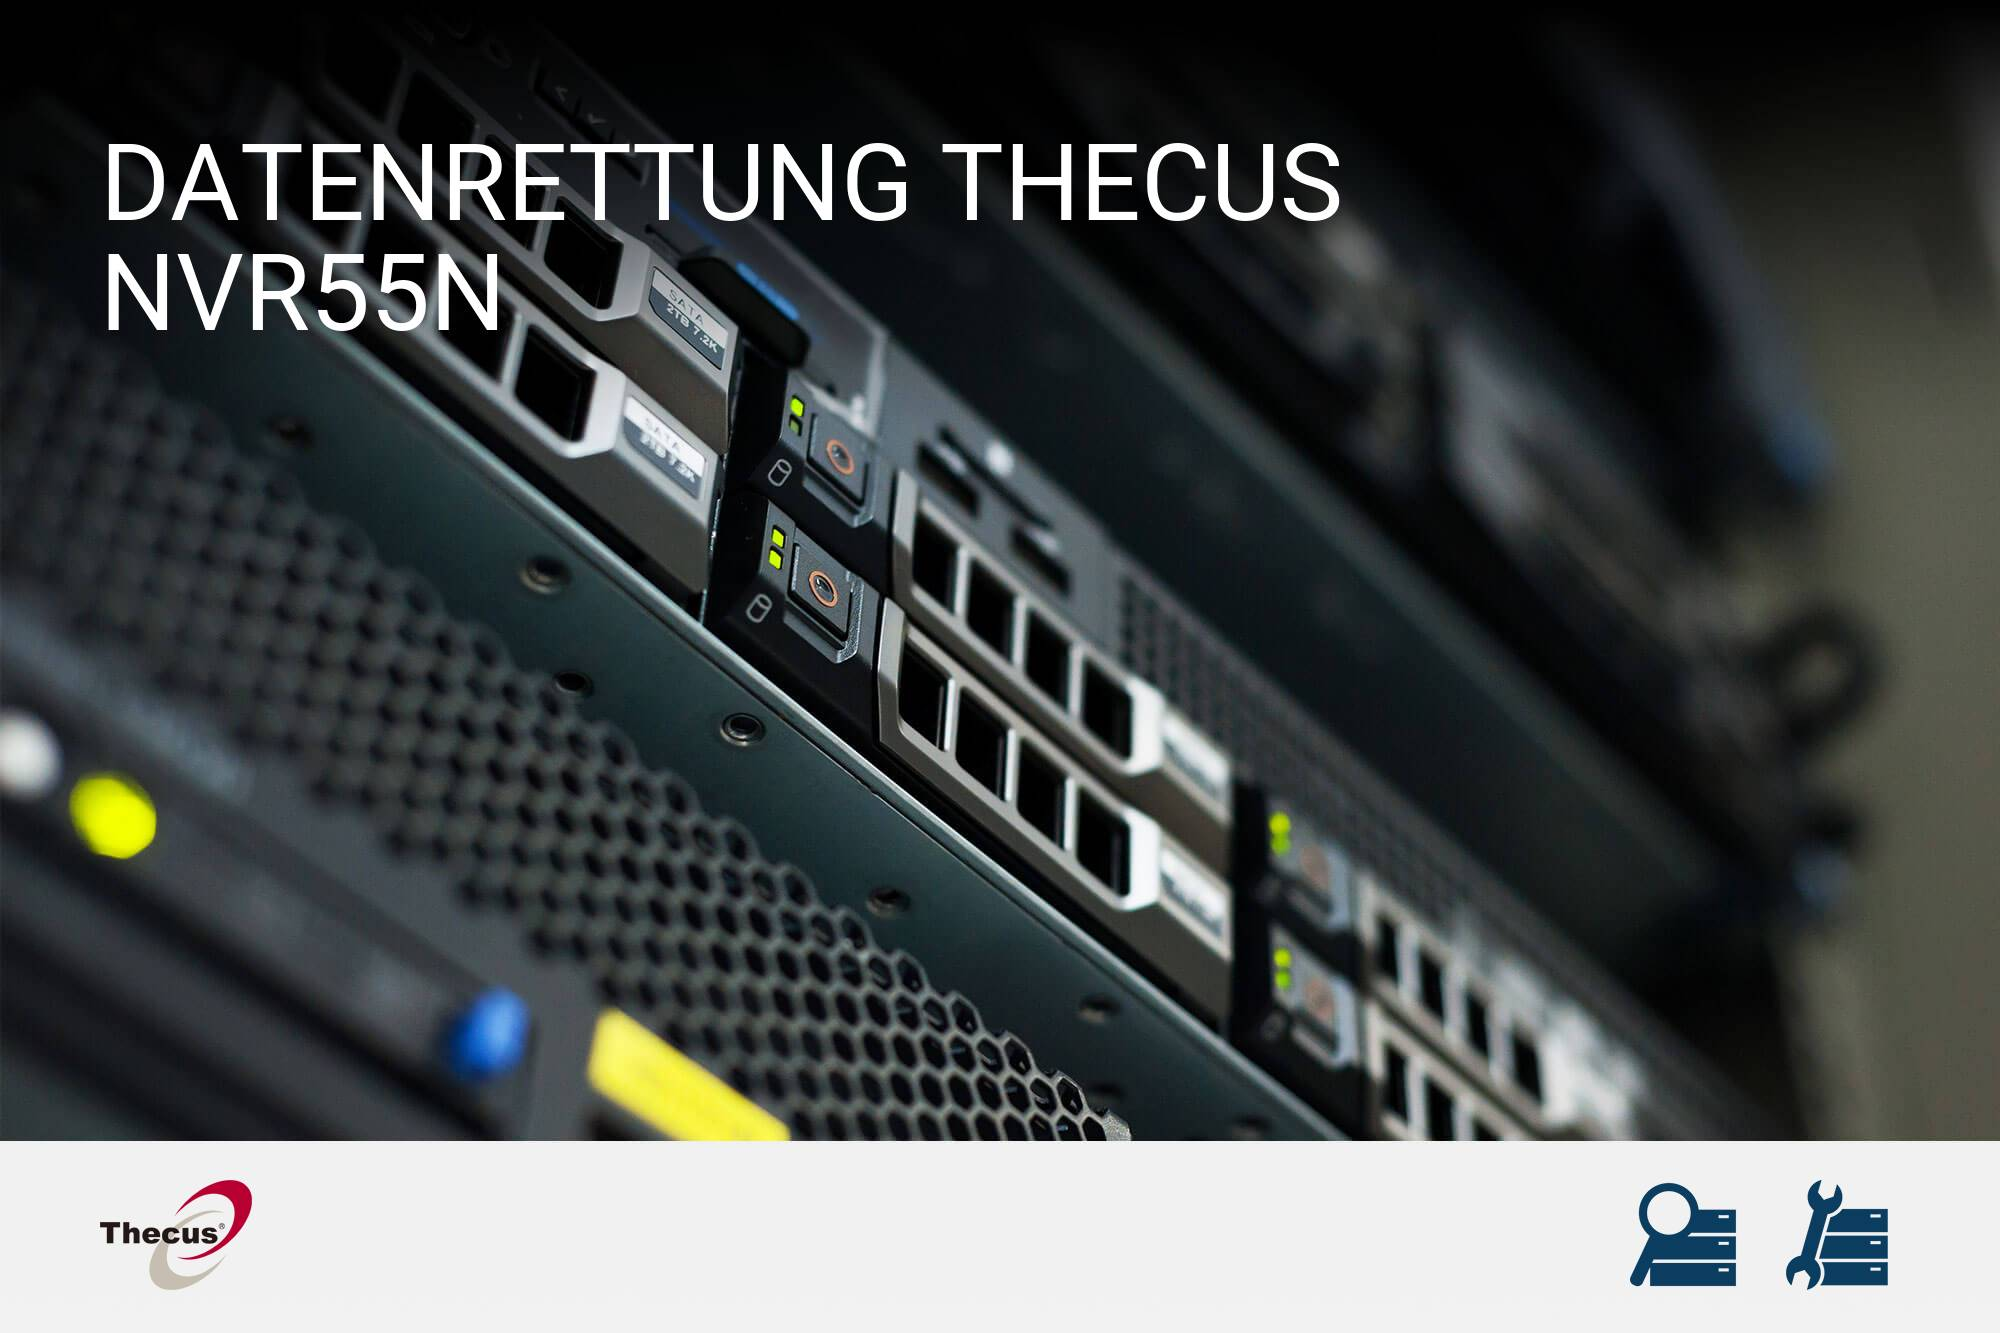 Thecus NVR55N